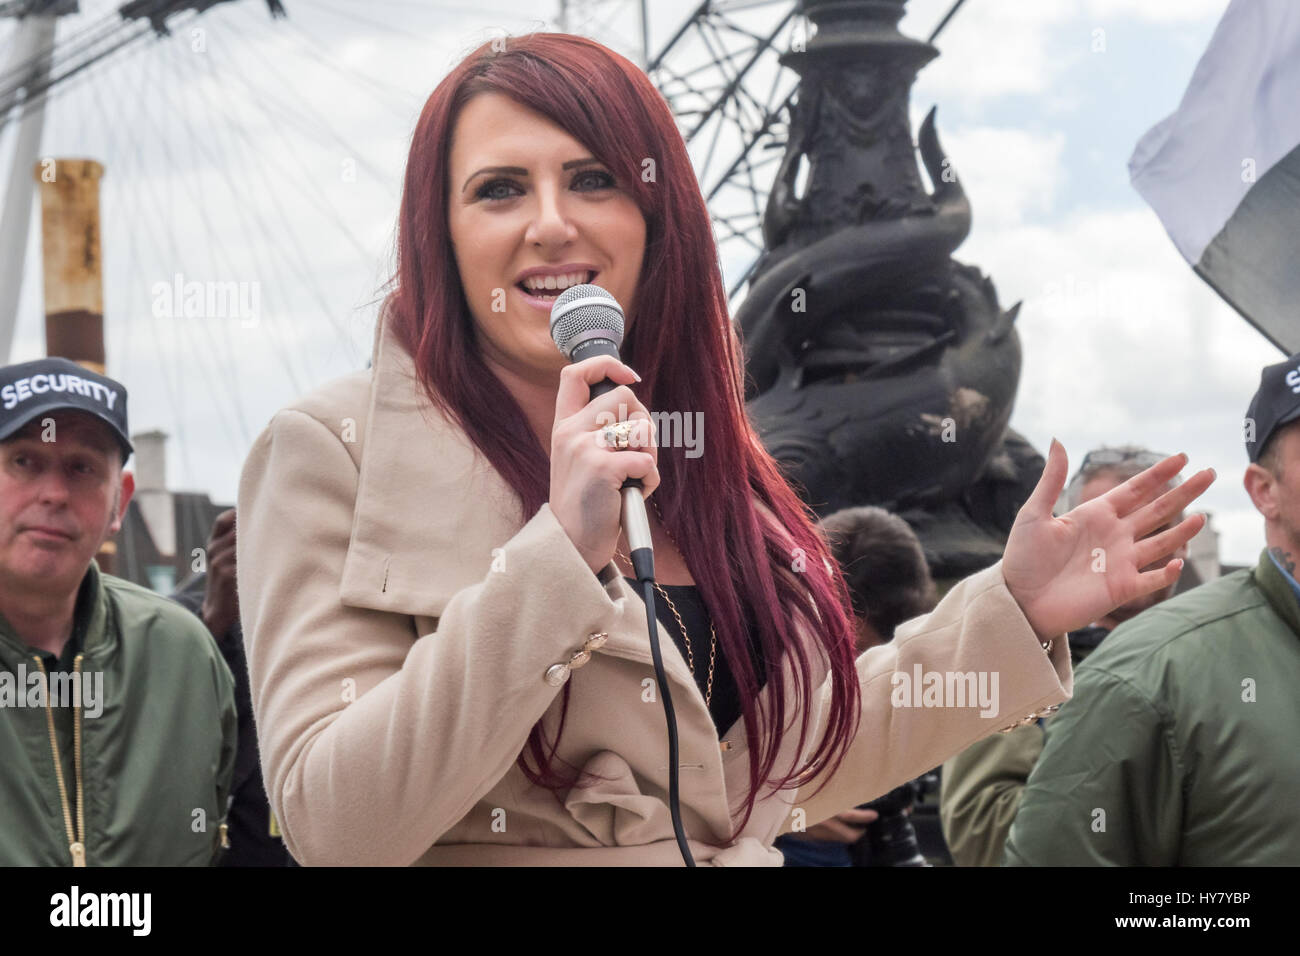 London, UK. 1st Apr, 2017. Britain First Deputy Leader Jayda Fransen speaks in front of the crowd at their rally - Stock Image